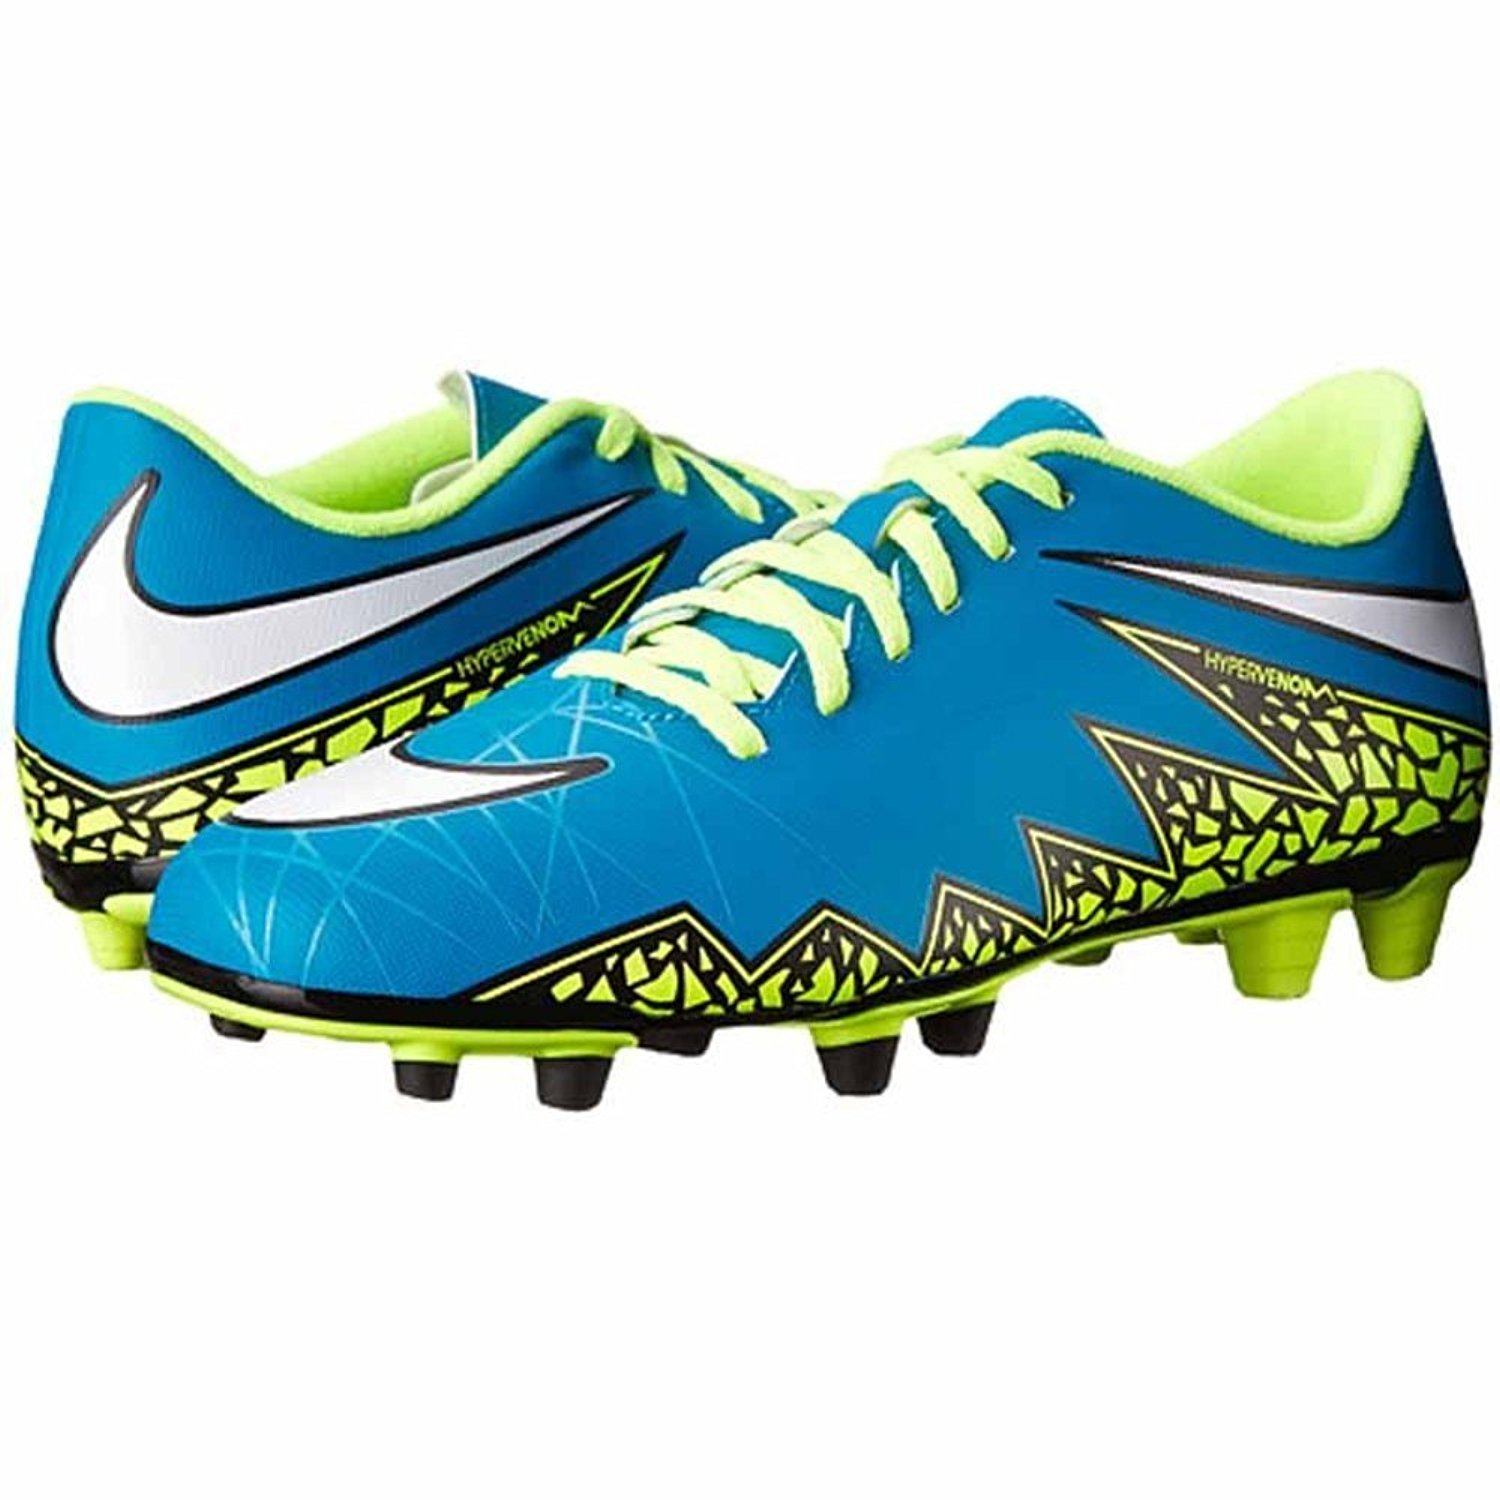 66759808be5a9 Buy Nike Kids Hypervenom Phade II FG Soccer Cleats - (Blue/White ...